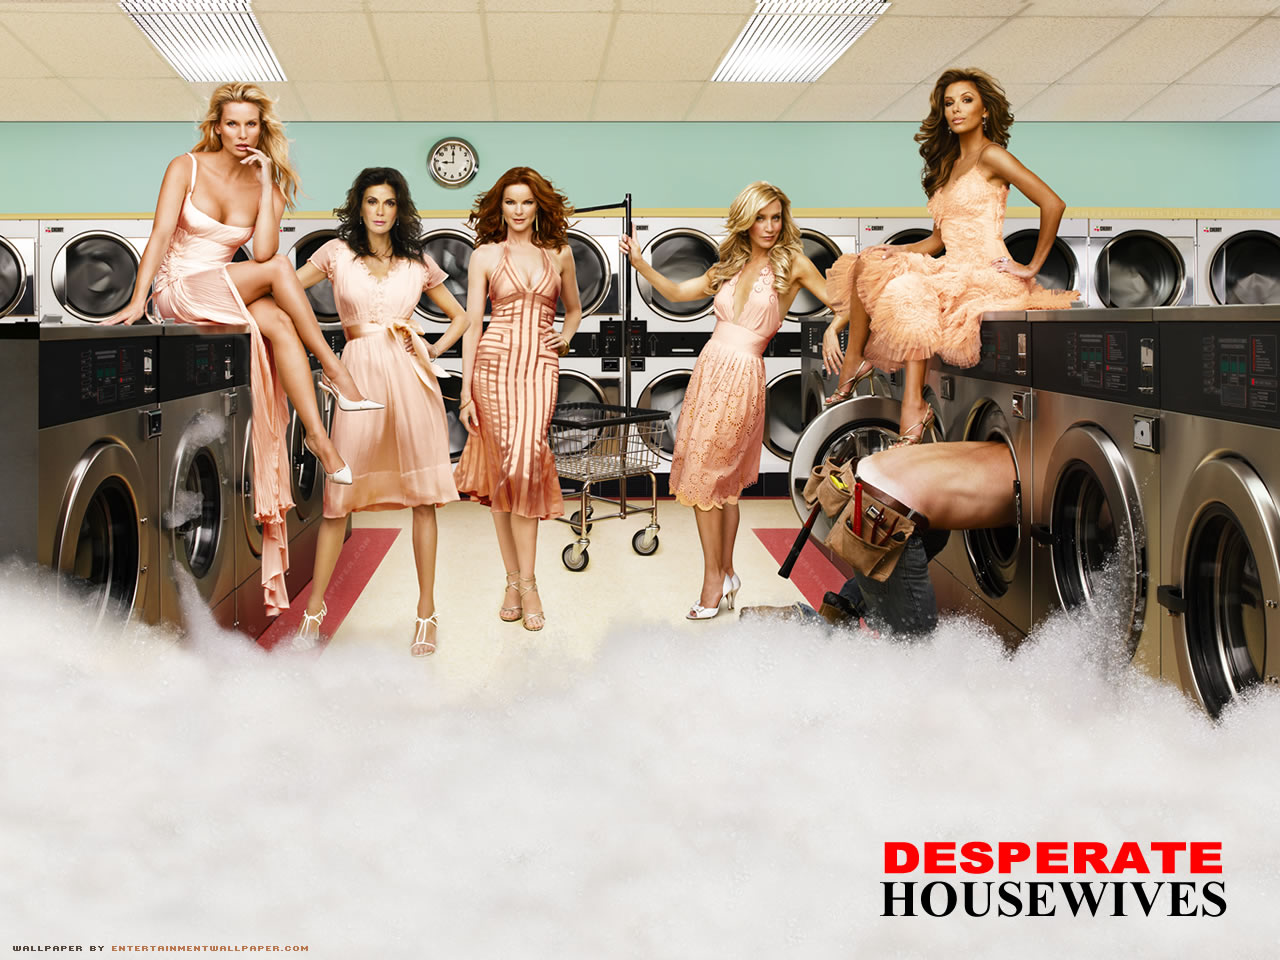 http://images.fanpop.com/images/image_uploads/Desperate-Housewives-cast-desperate-housewives-791679_1280_960.jpg